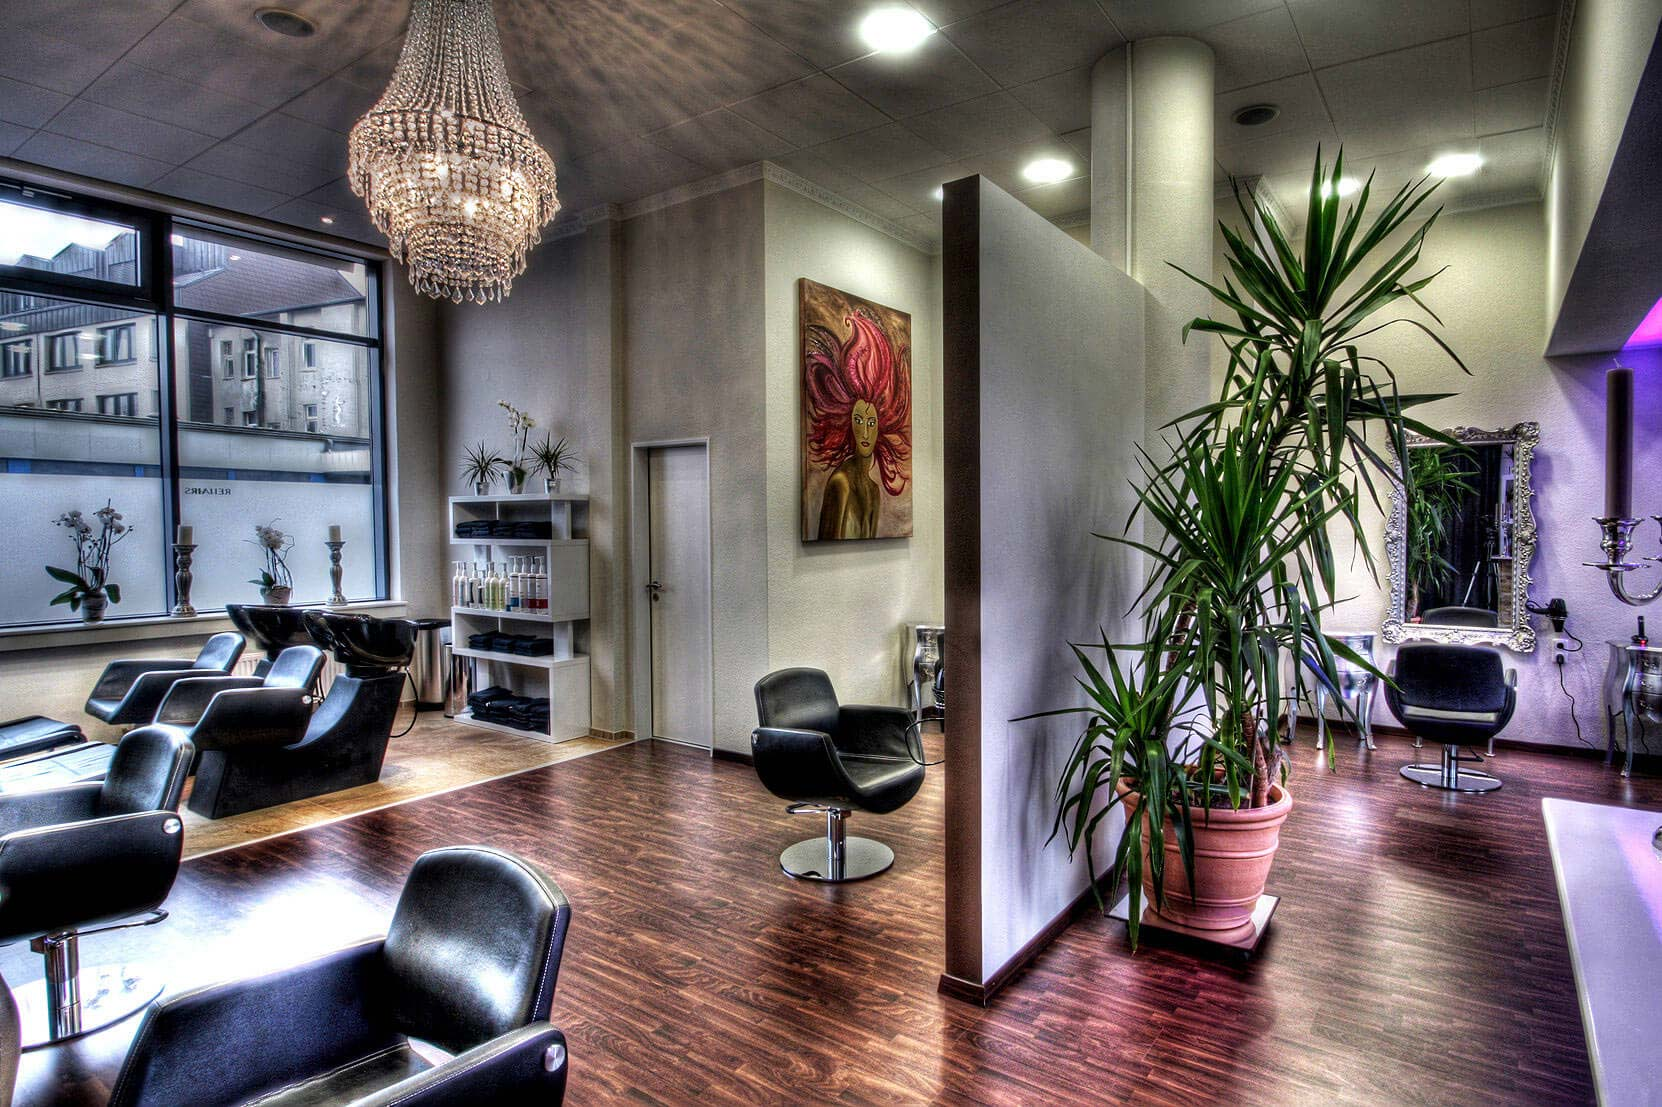 schnittraum hamburg euer friseur in hamburg uhlenhorst laden mieten gewerbeimmobilien mieten in. Black Bedroom Furniture Sets. Home Design Ideas